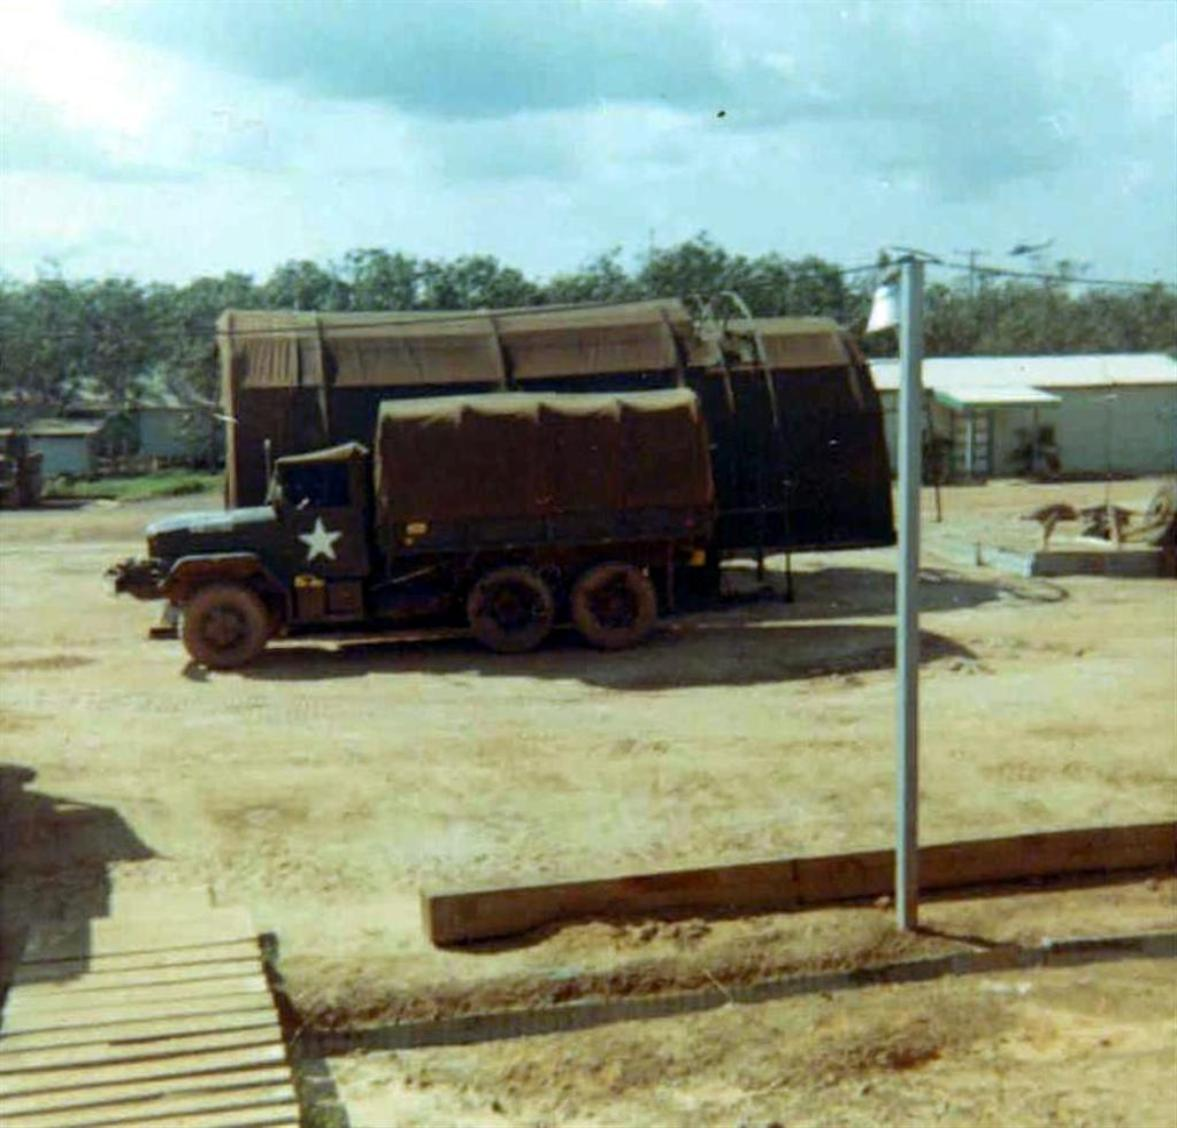 402nd Company Maintenance Area At Camp Camelot